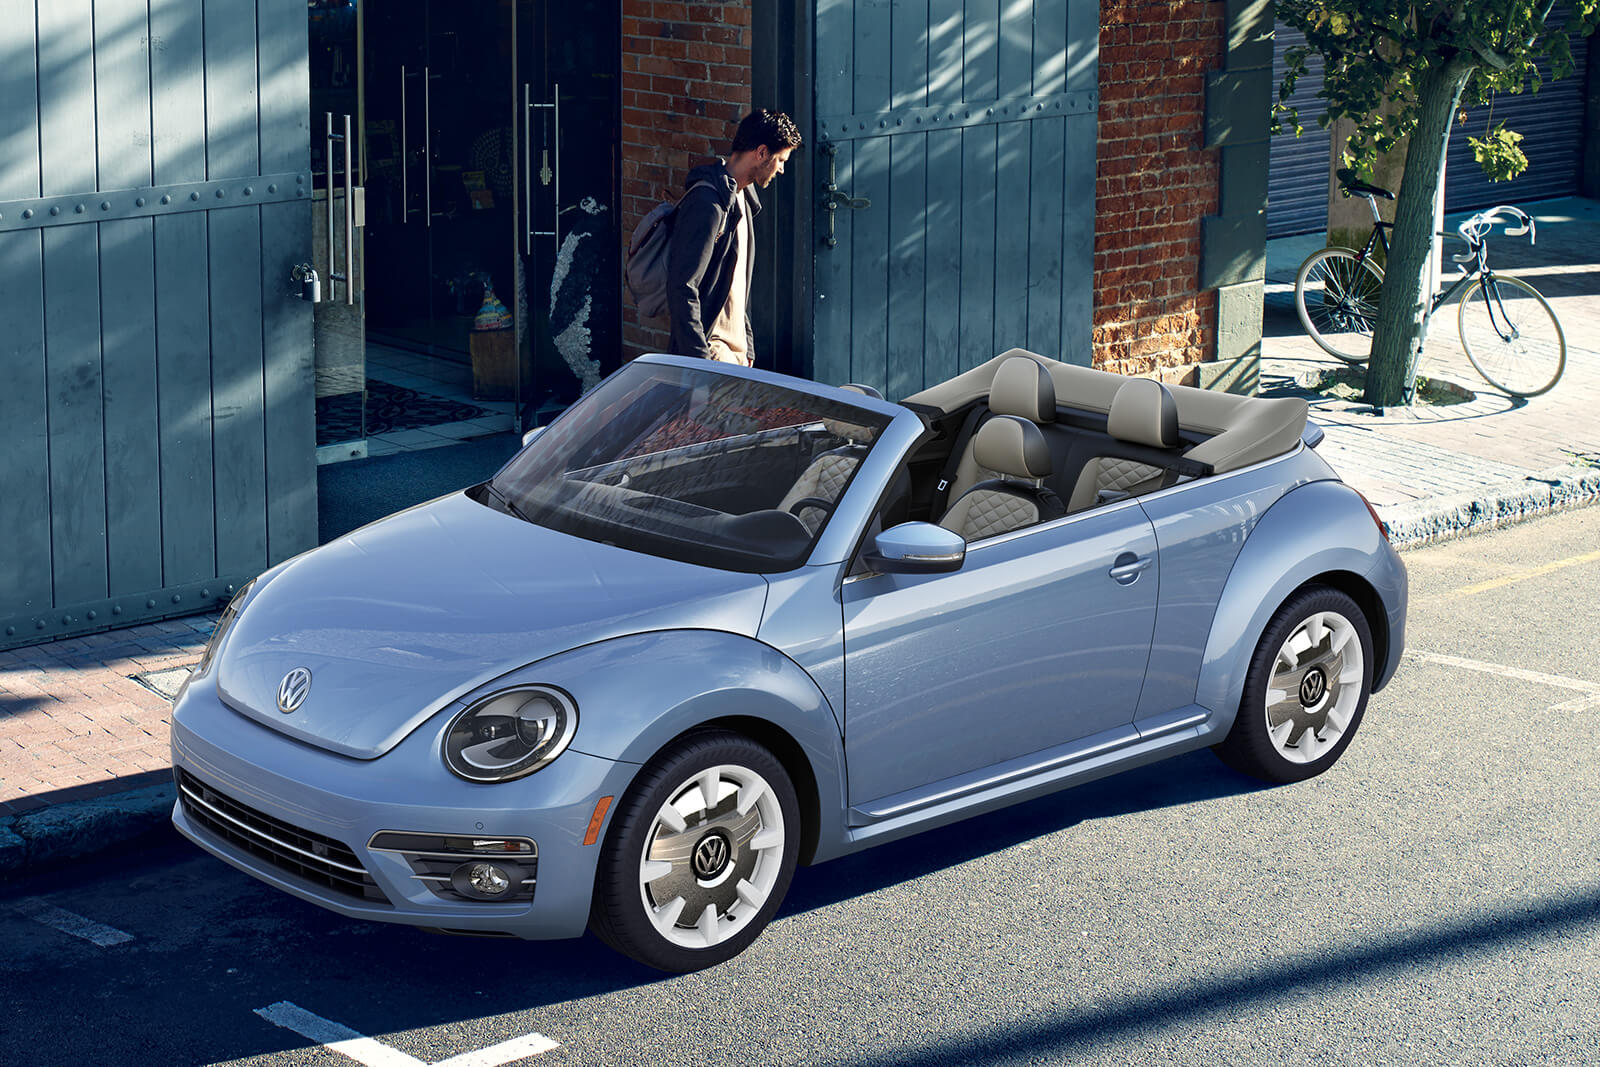 2019 Volkswagen Beetle Convertible Silk Blue Metallic Exterior Side